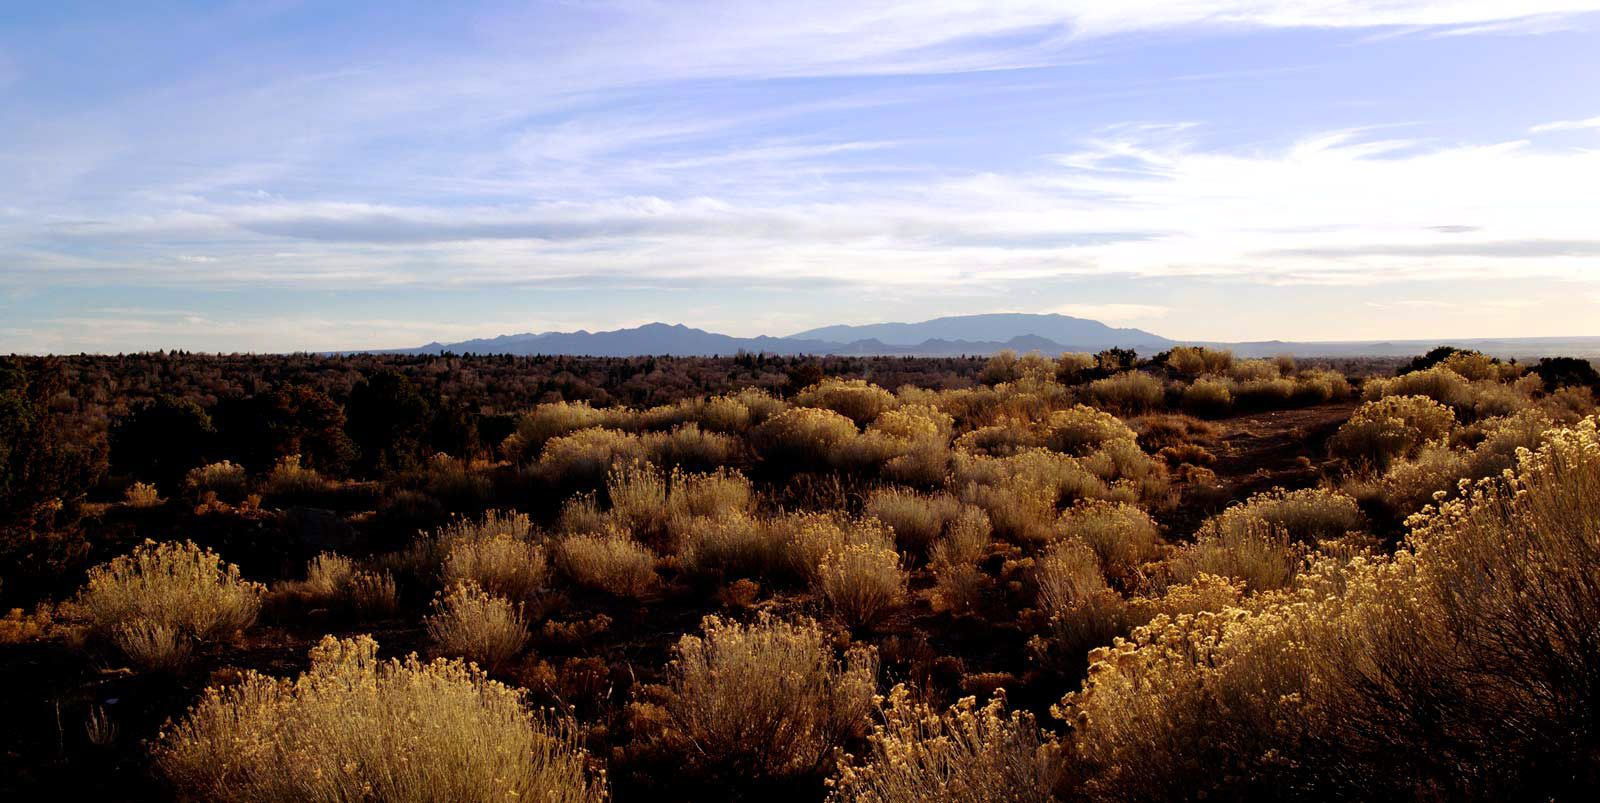 santa fe new mexico | santa fe new mexico the distant ortiz mountains viewed from santa fe ...